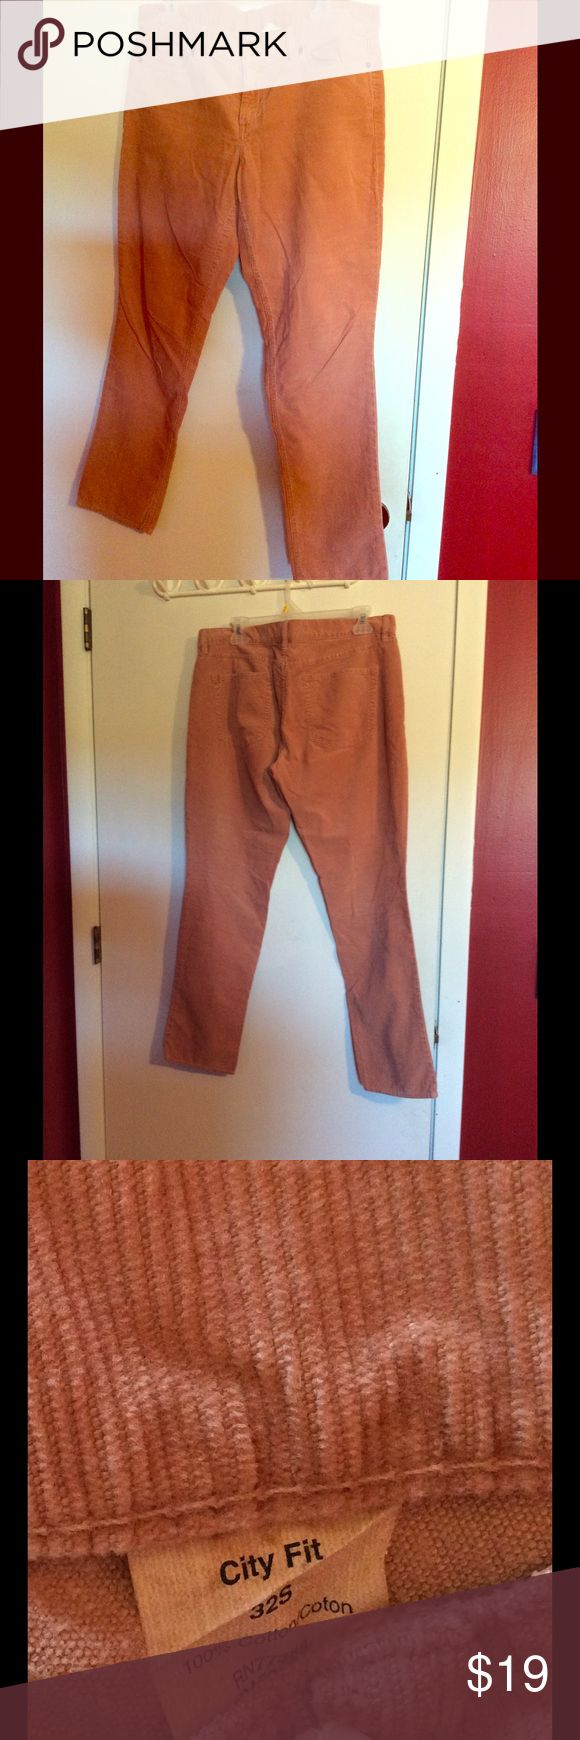 Salmon pink cord pants Excellent condition. Short cord pants. Color is a light rose or salmon pink. J. Crew Pants Straight Leg